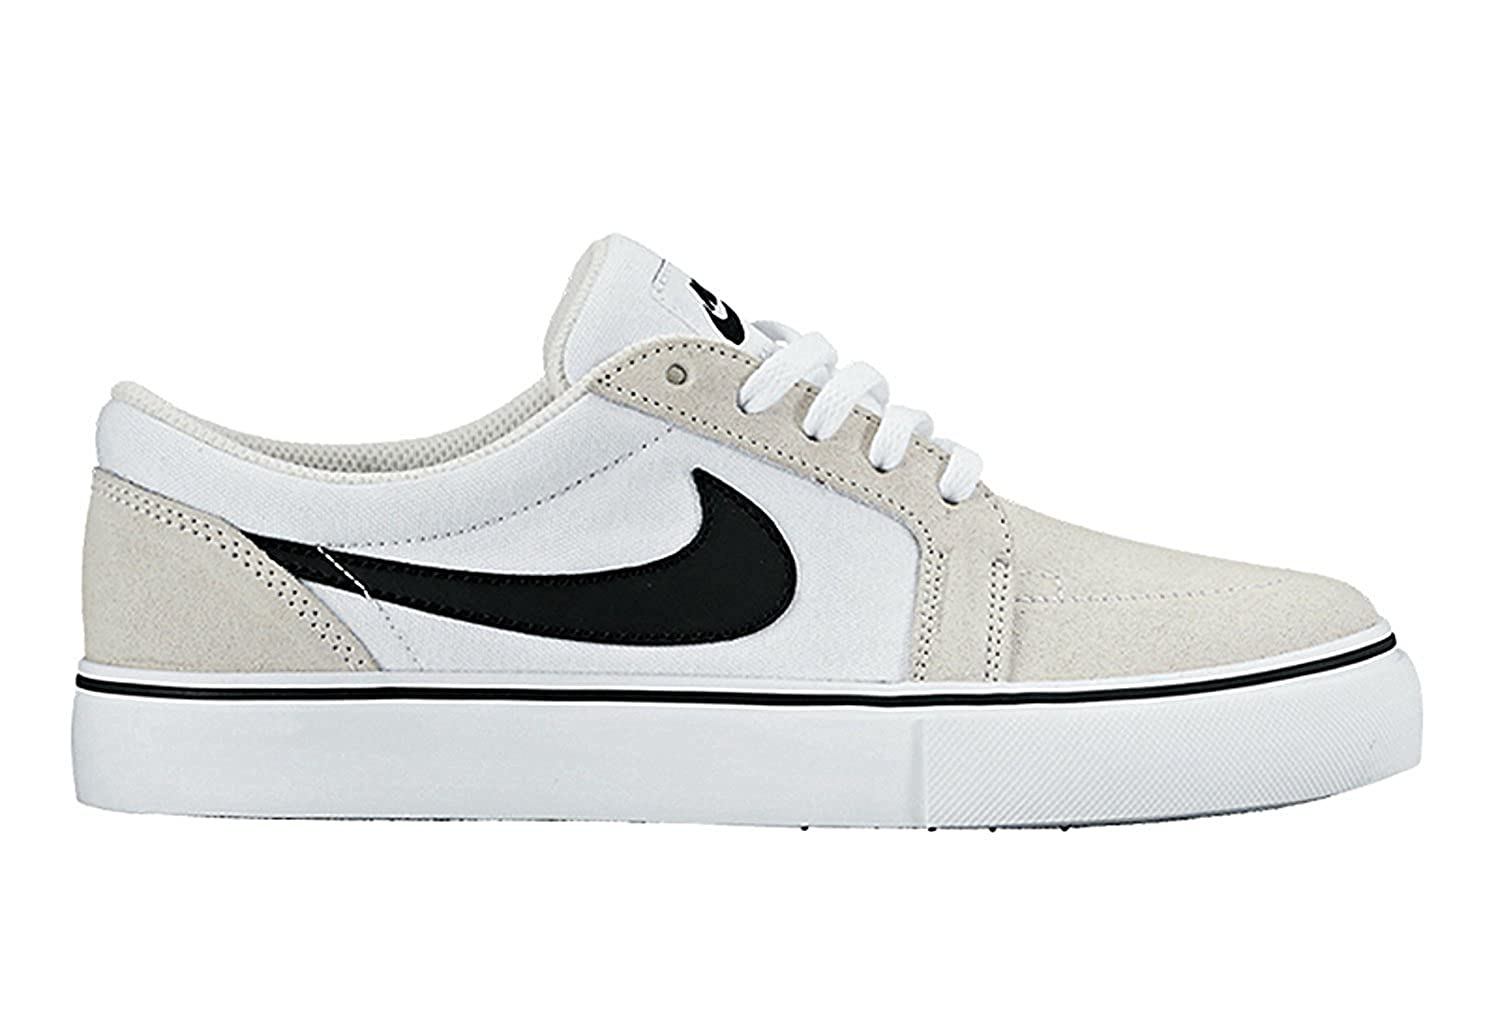 Panorama extremadamente explotar  Buy Nike SB Satire II Men's Walking Shoes Summit White 729809 101 (11. 5)  at Amazon.in